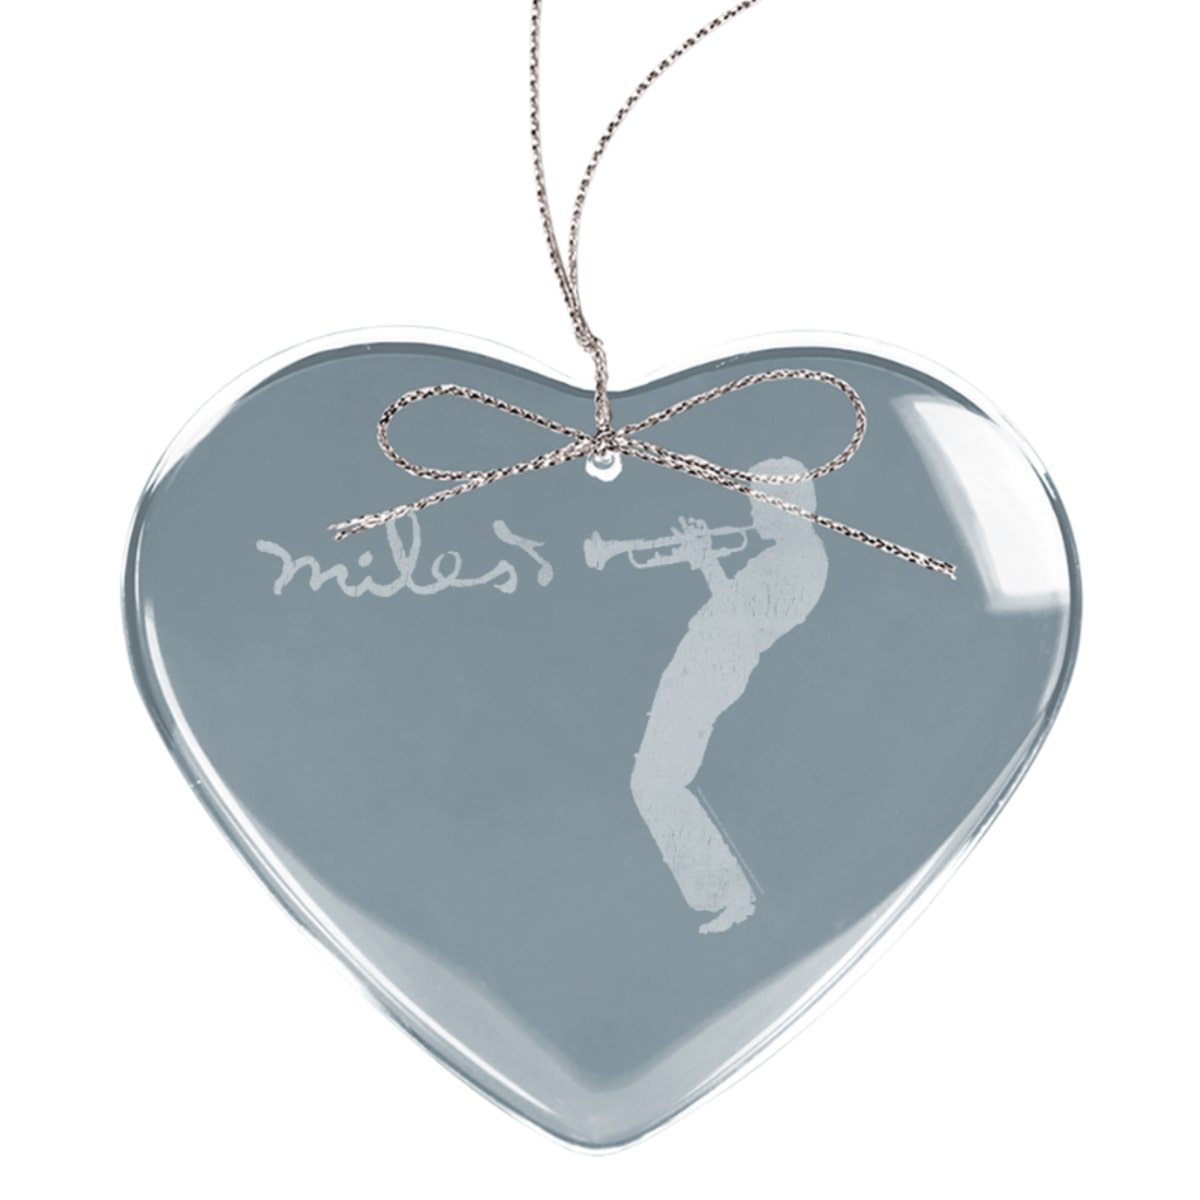 Silhouette Heart Laser-Etched Glass Ornament